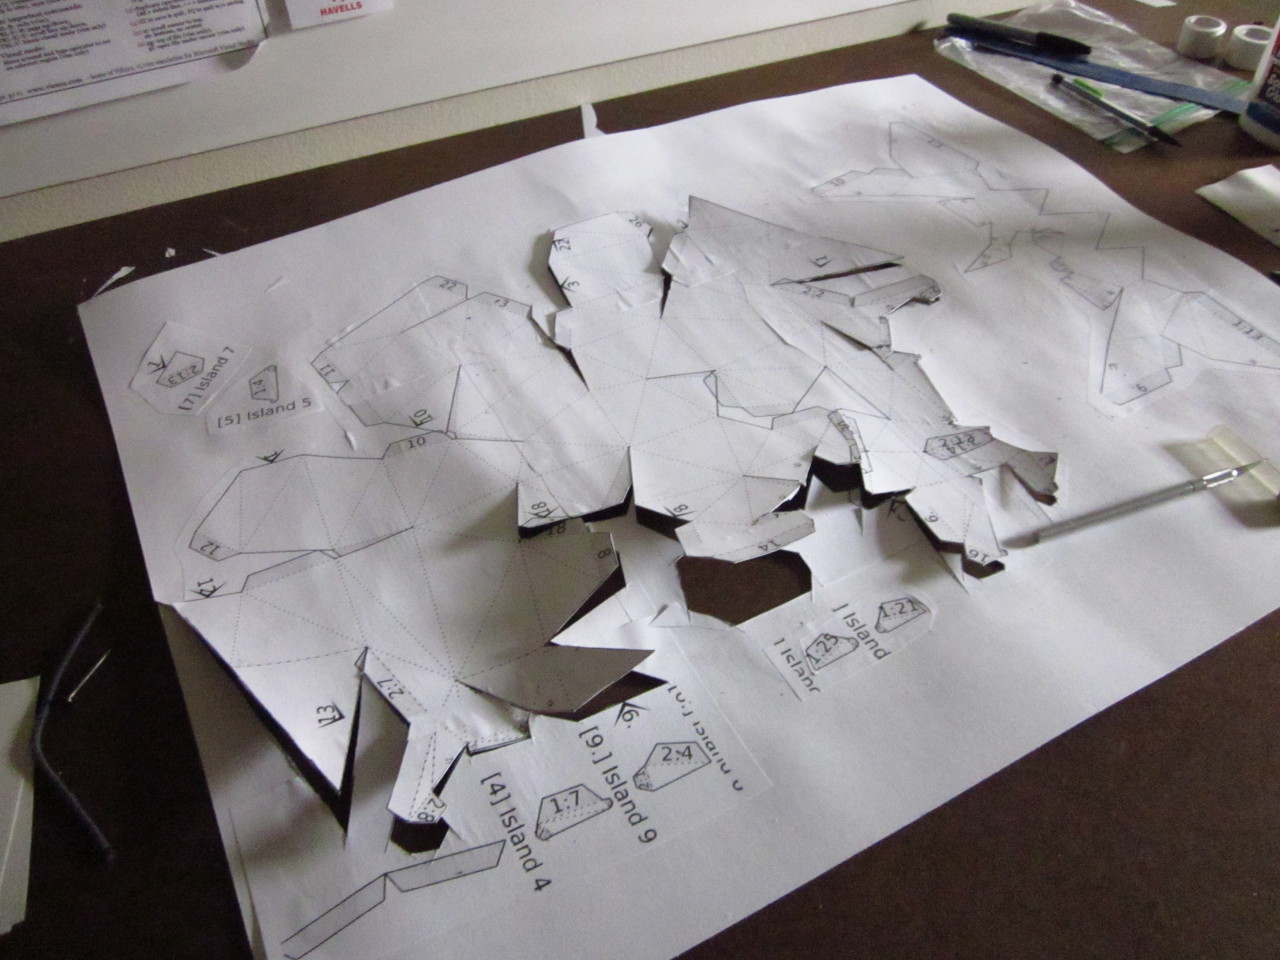 A sheet of posterboard lies on a brown surface, surrounded by implements of cutting. Jagged lines are cut in its wrinkled surface, and part of it peels up away from the brown.